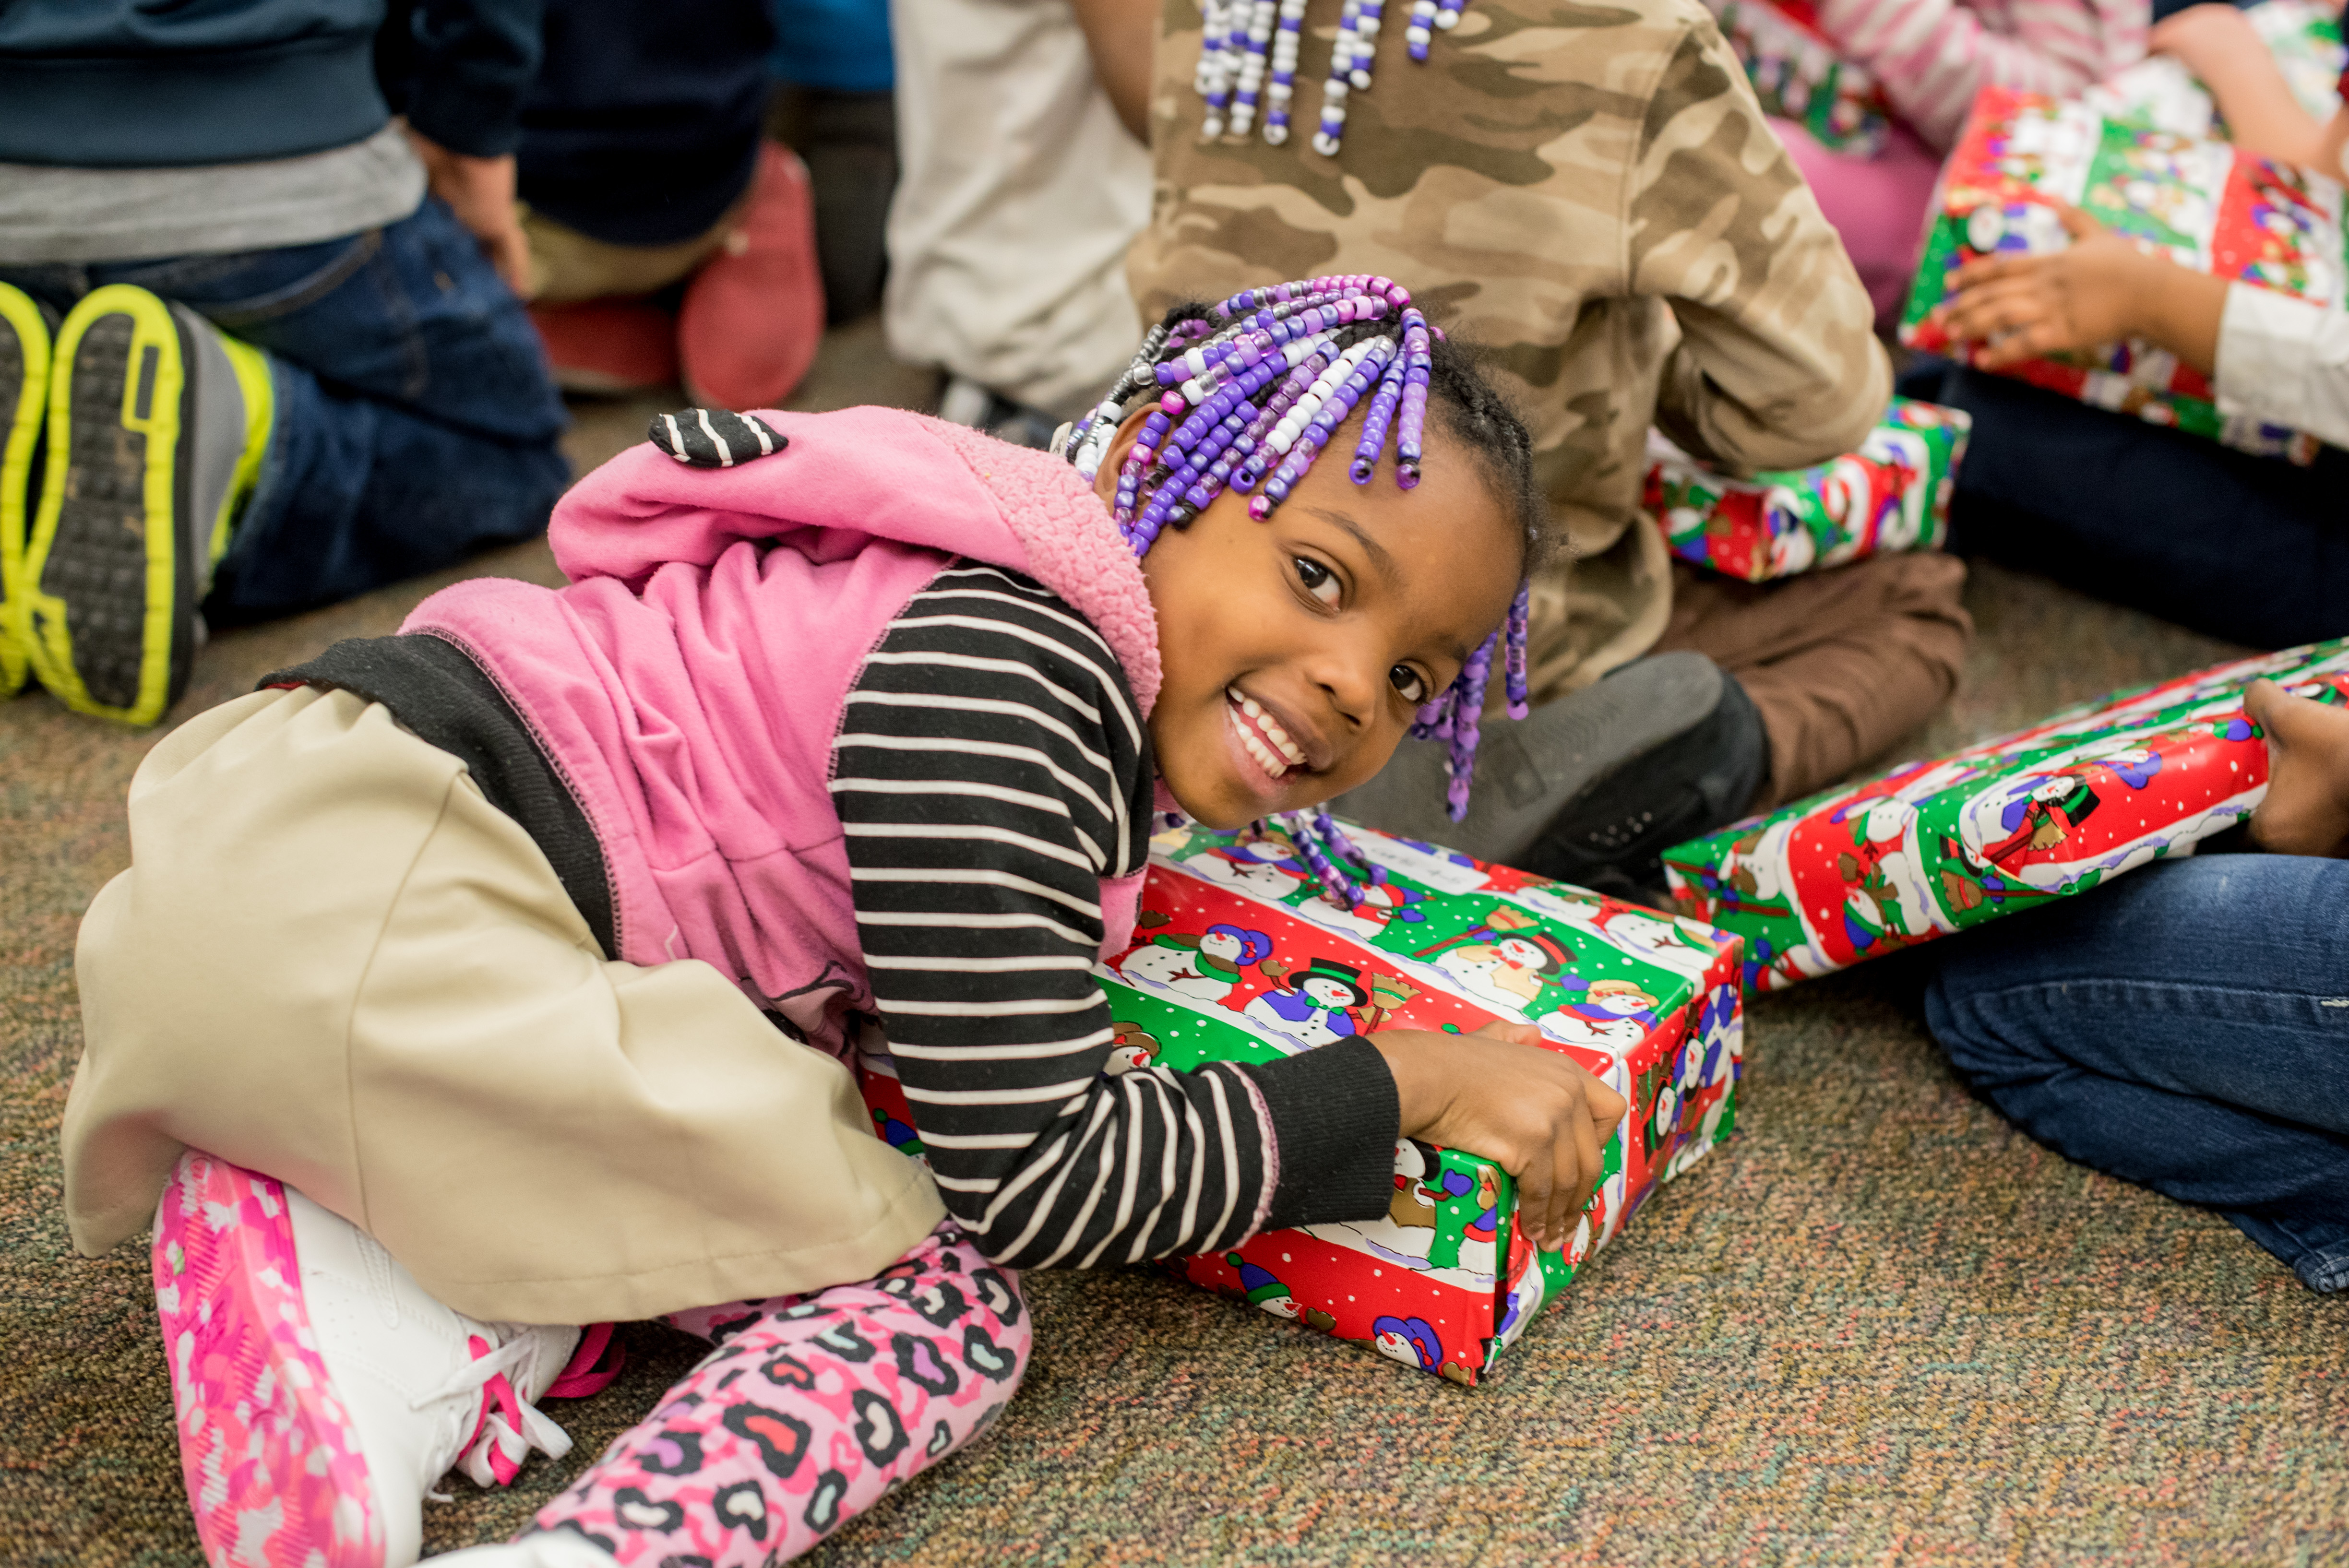 Boys & Girls Clubs of Greater Milwaukee Aims to Make the Holidays Special for Milwaukee's Youth